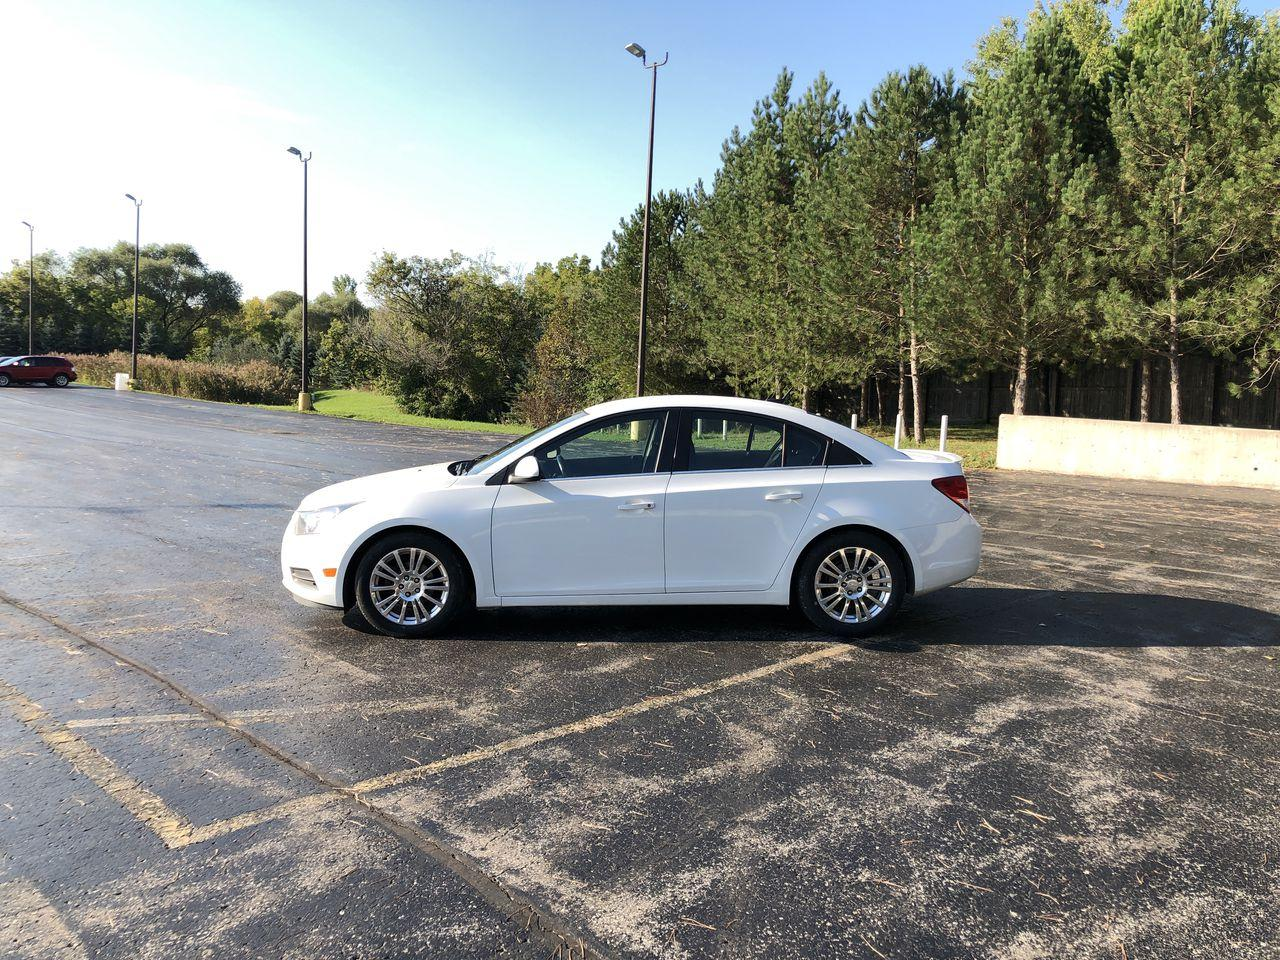 Used 2013 Chevrolet Cruze Eco Fwd For Sale In Cayuga